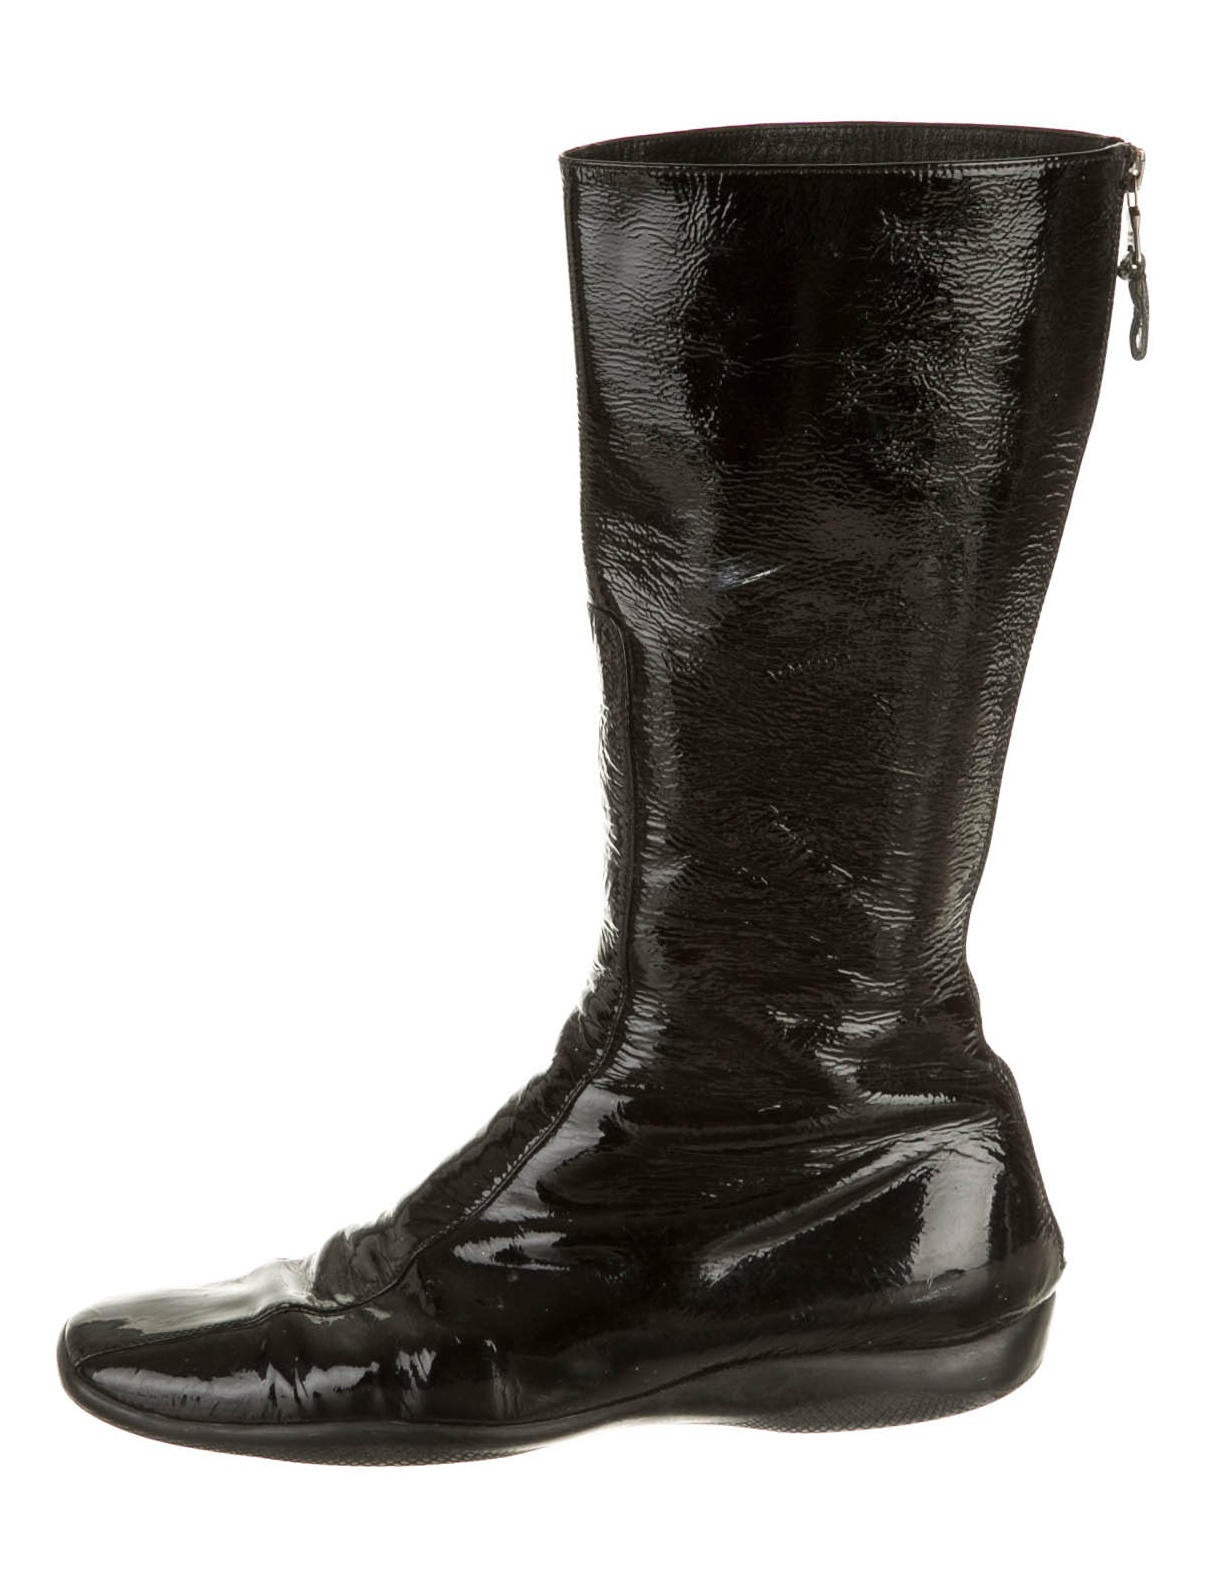 Prada Sport Boots - Shoes - WPR26071 | The RealReal